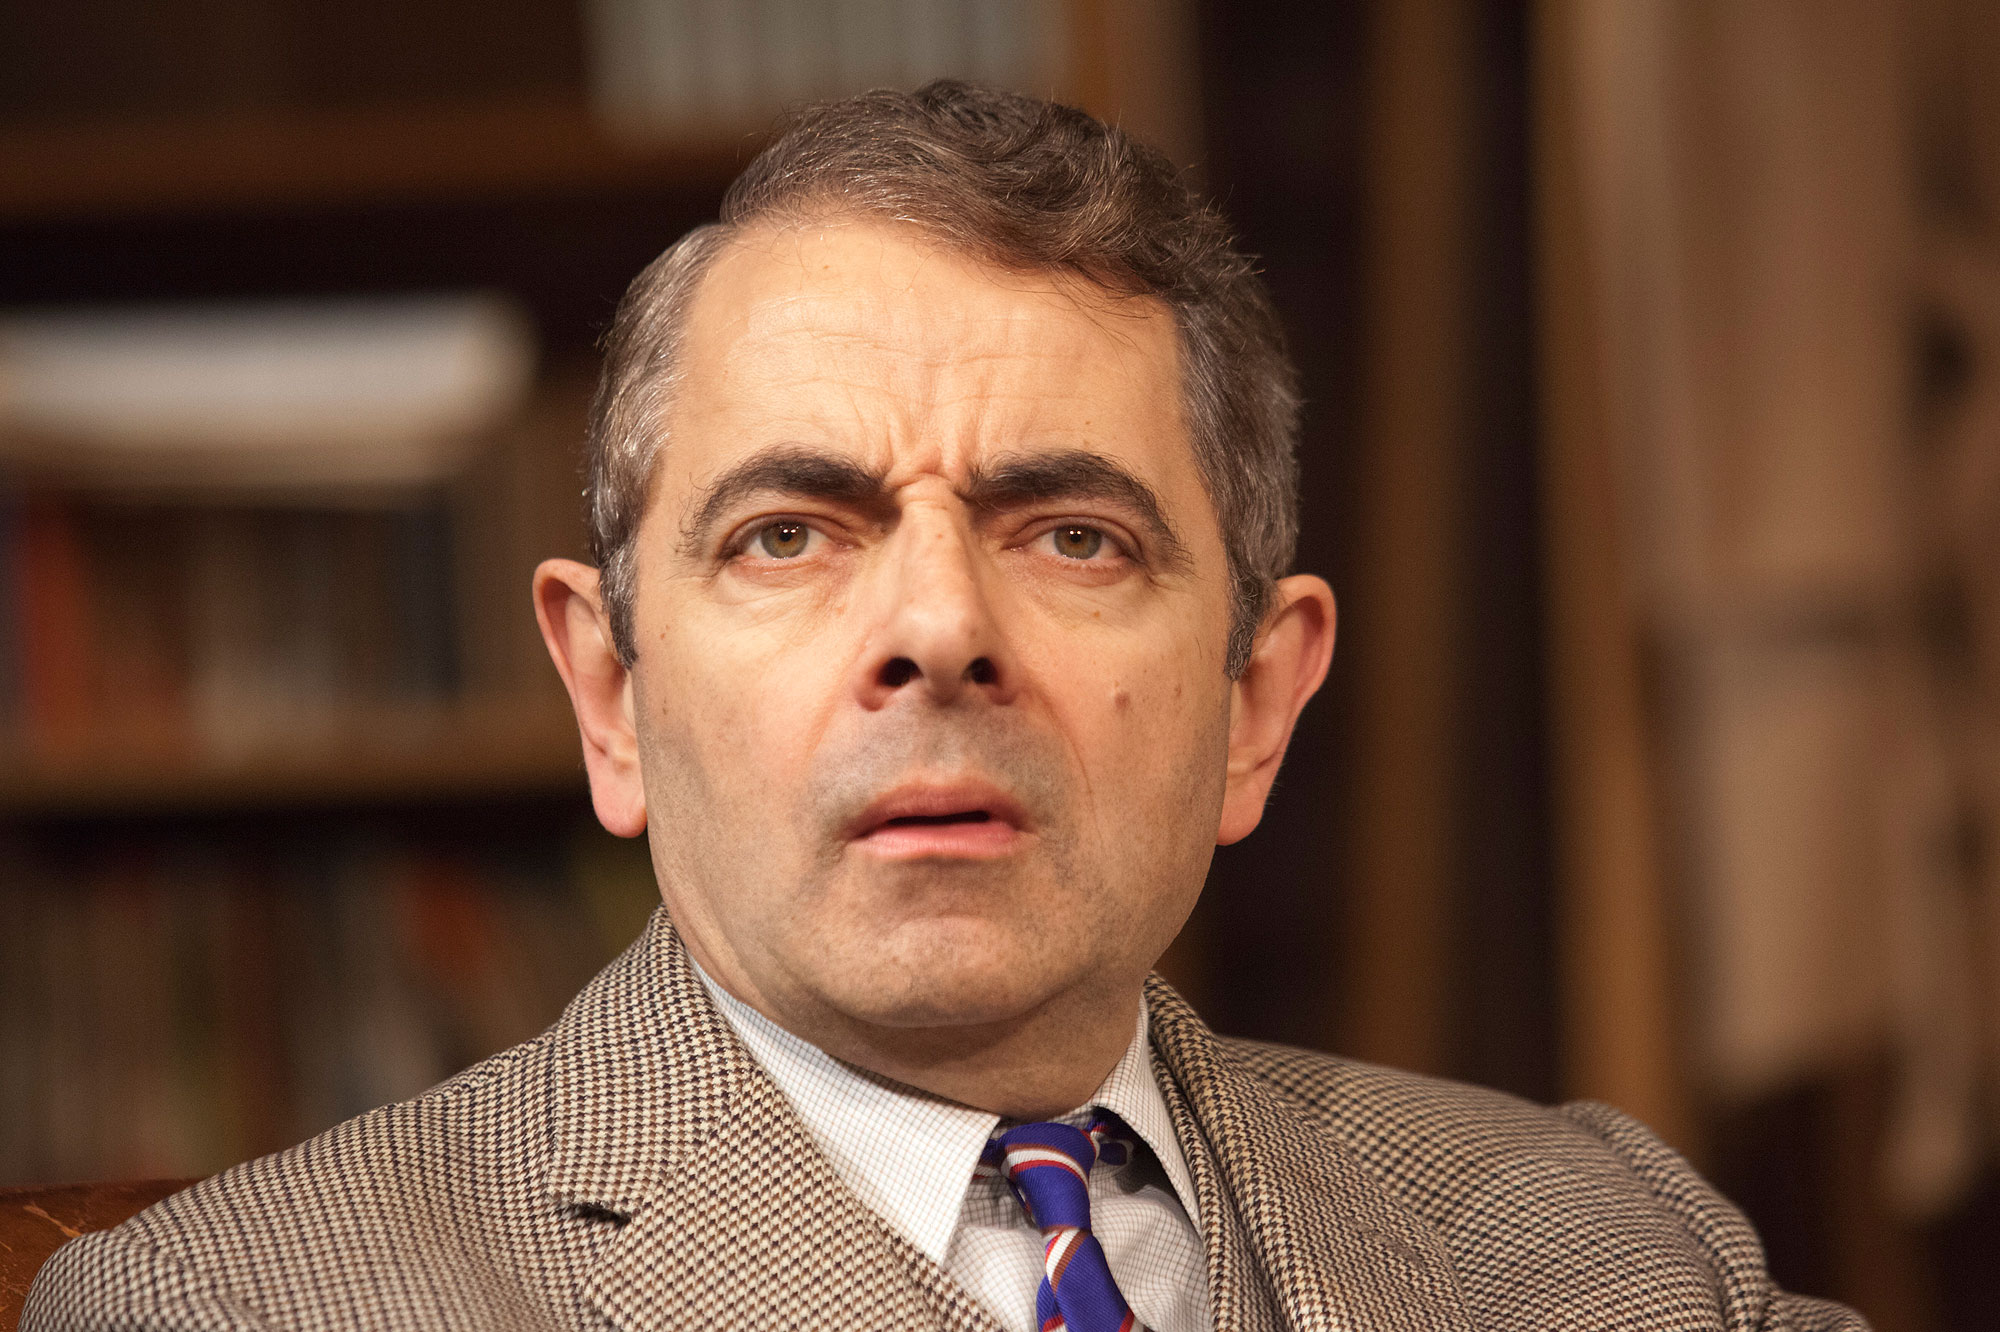 Daisy Iphone Wallpaper Rowan Atkinson Wallpapers Pictures Images